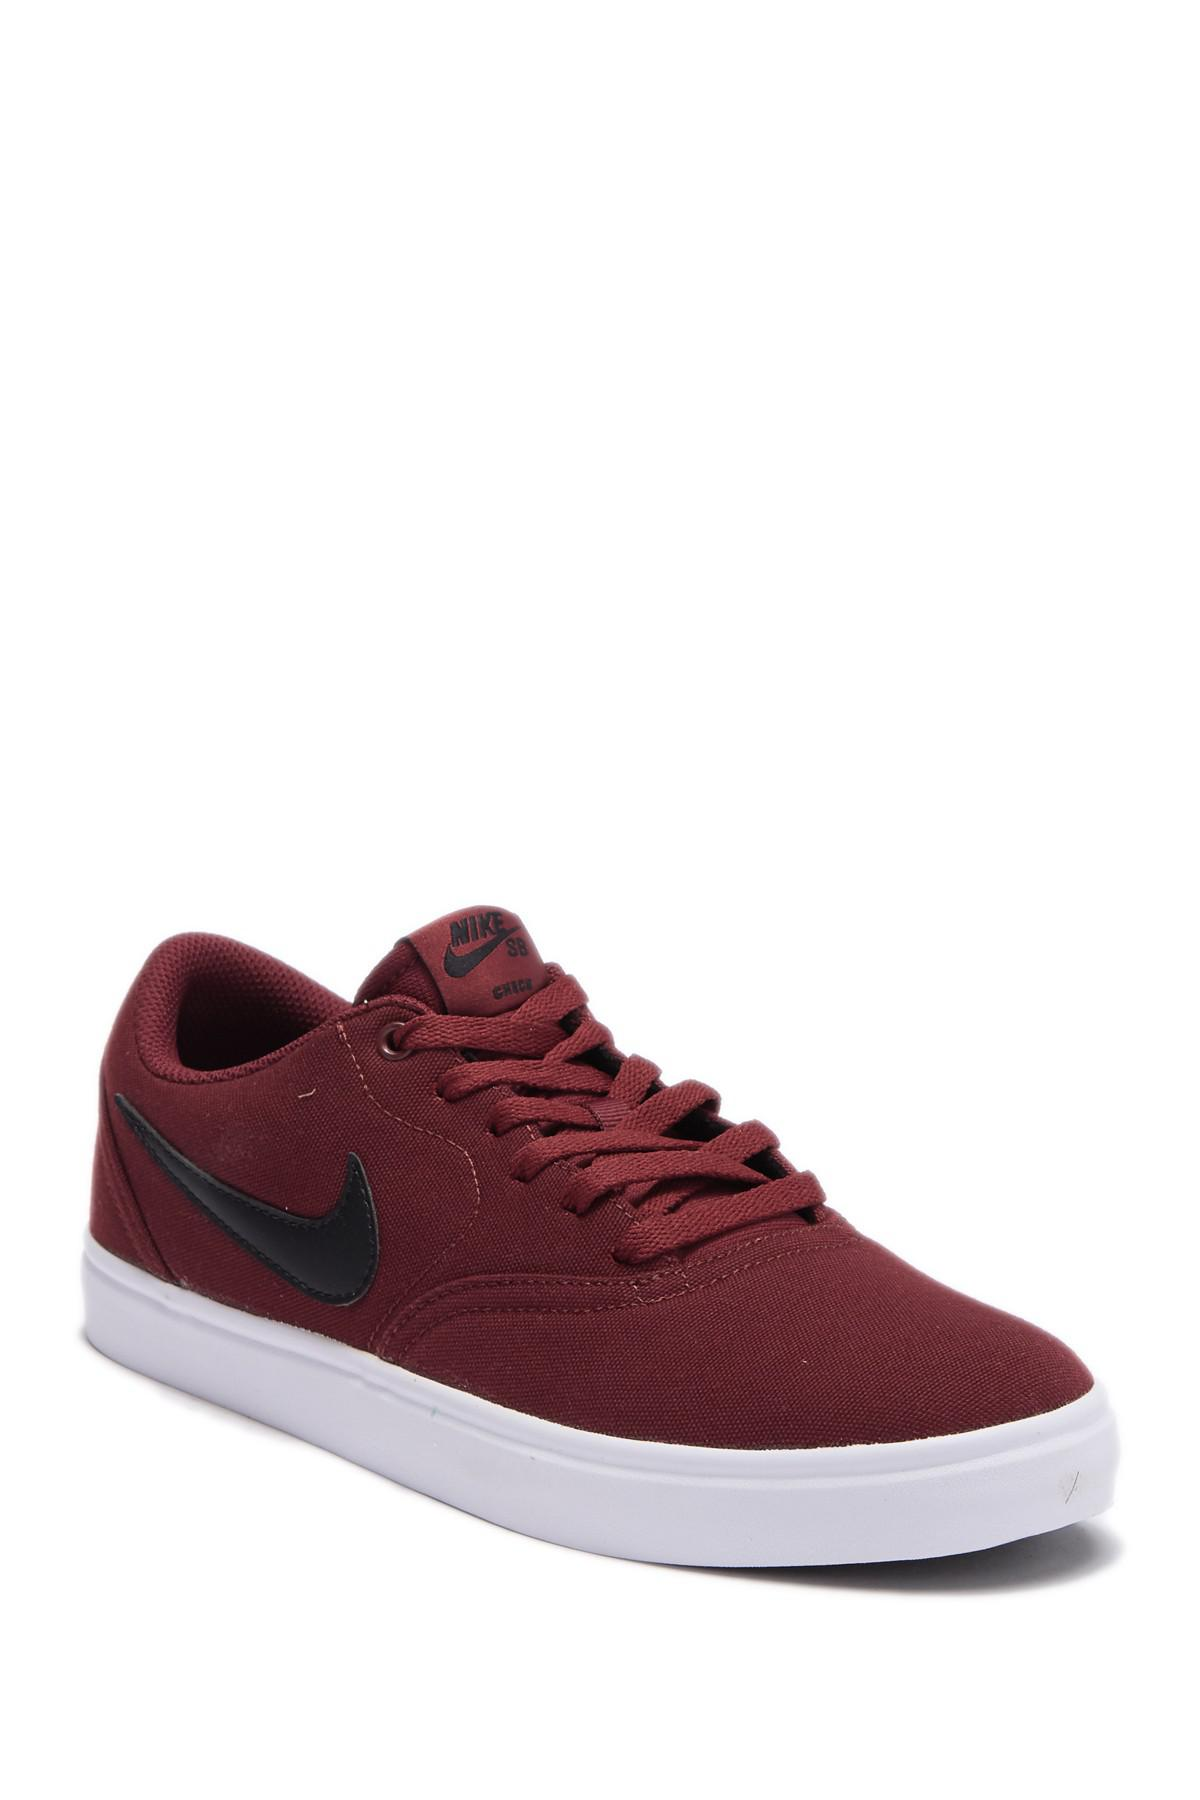 Nike Sb Check Solar Canvas Skate Shoes in Red for Men - Lyst